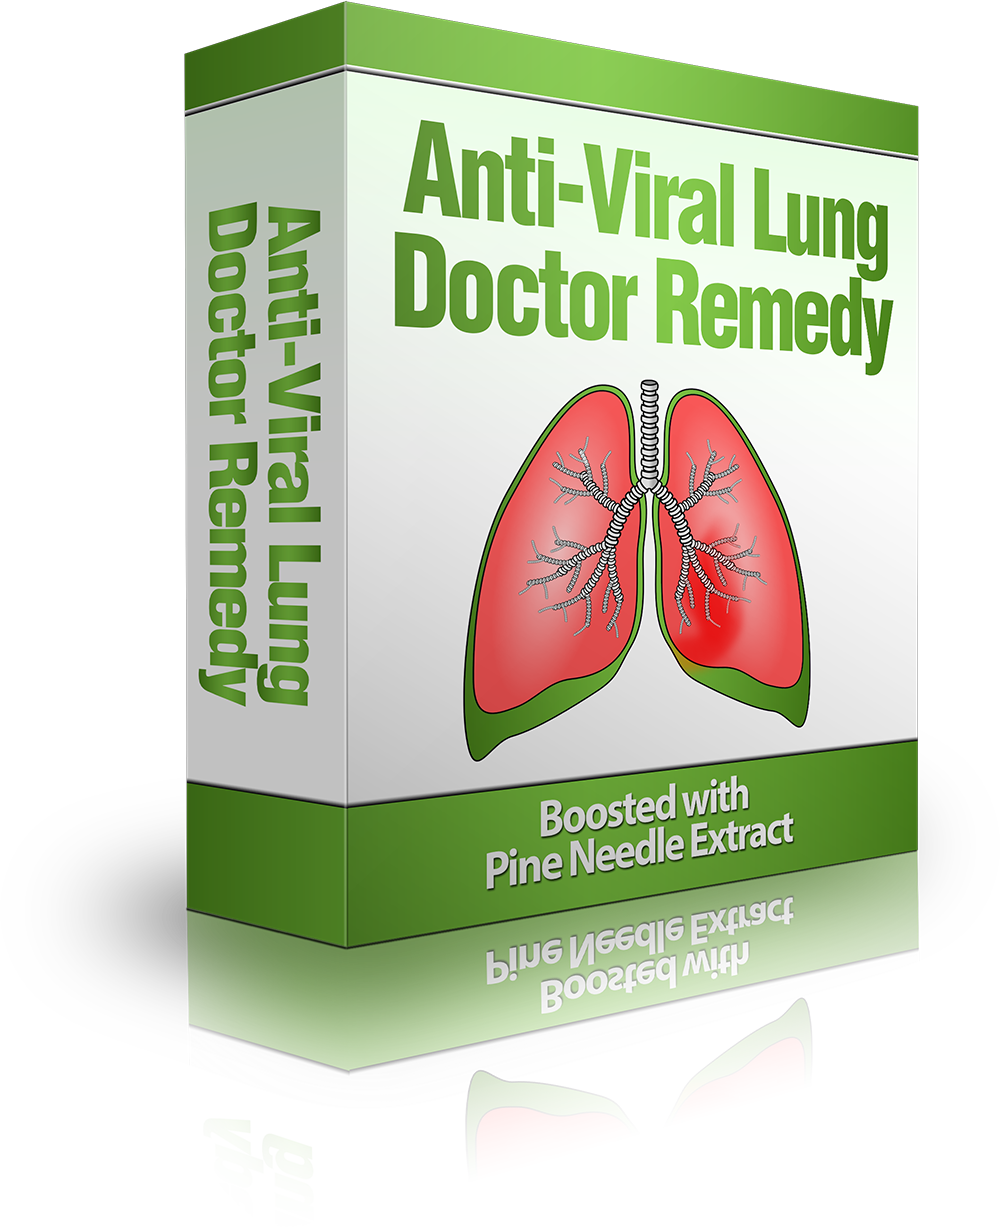 Anti-Viral Lung Doctor Remedy – with Added Pine Needle Extract*